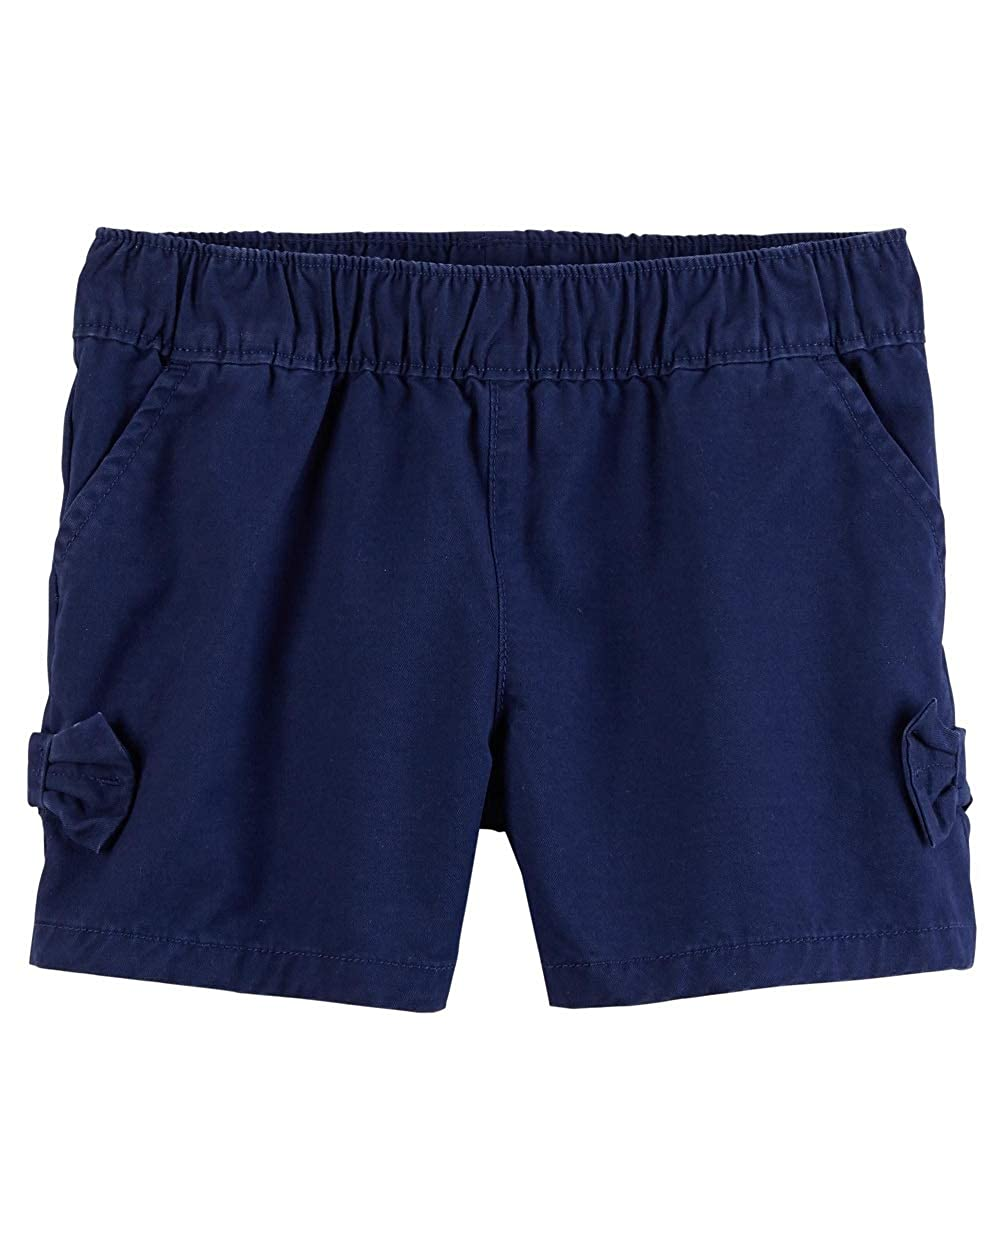 Carters Baby Girls Easy Pull-On Bow Shorts Navy Blue